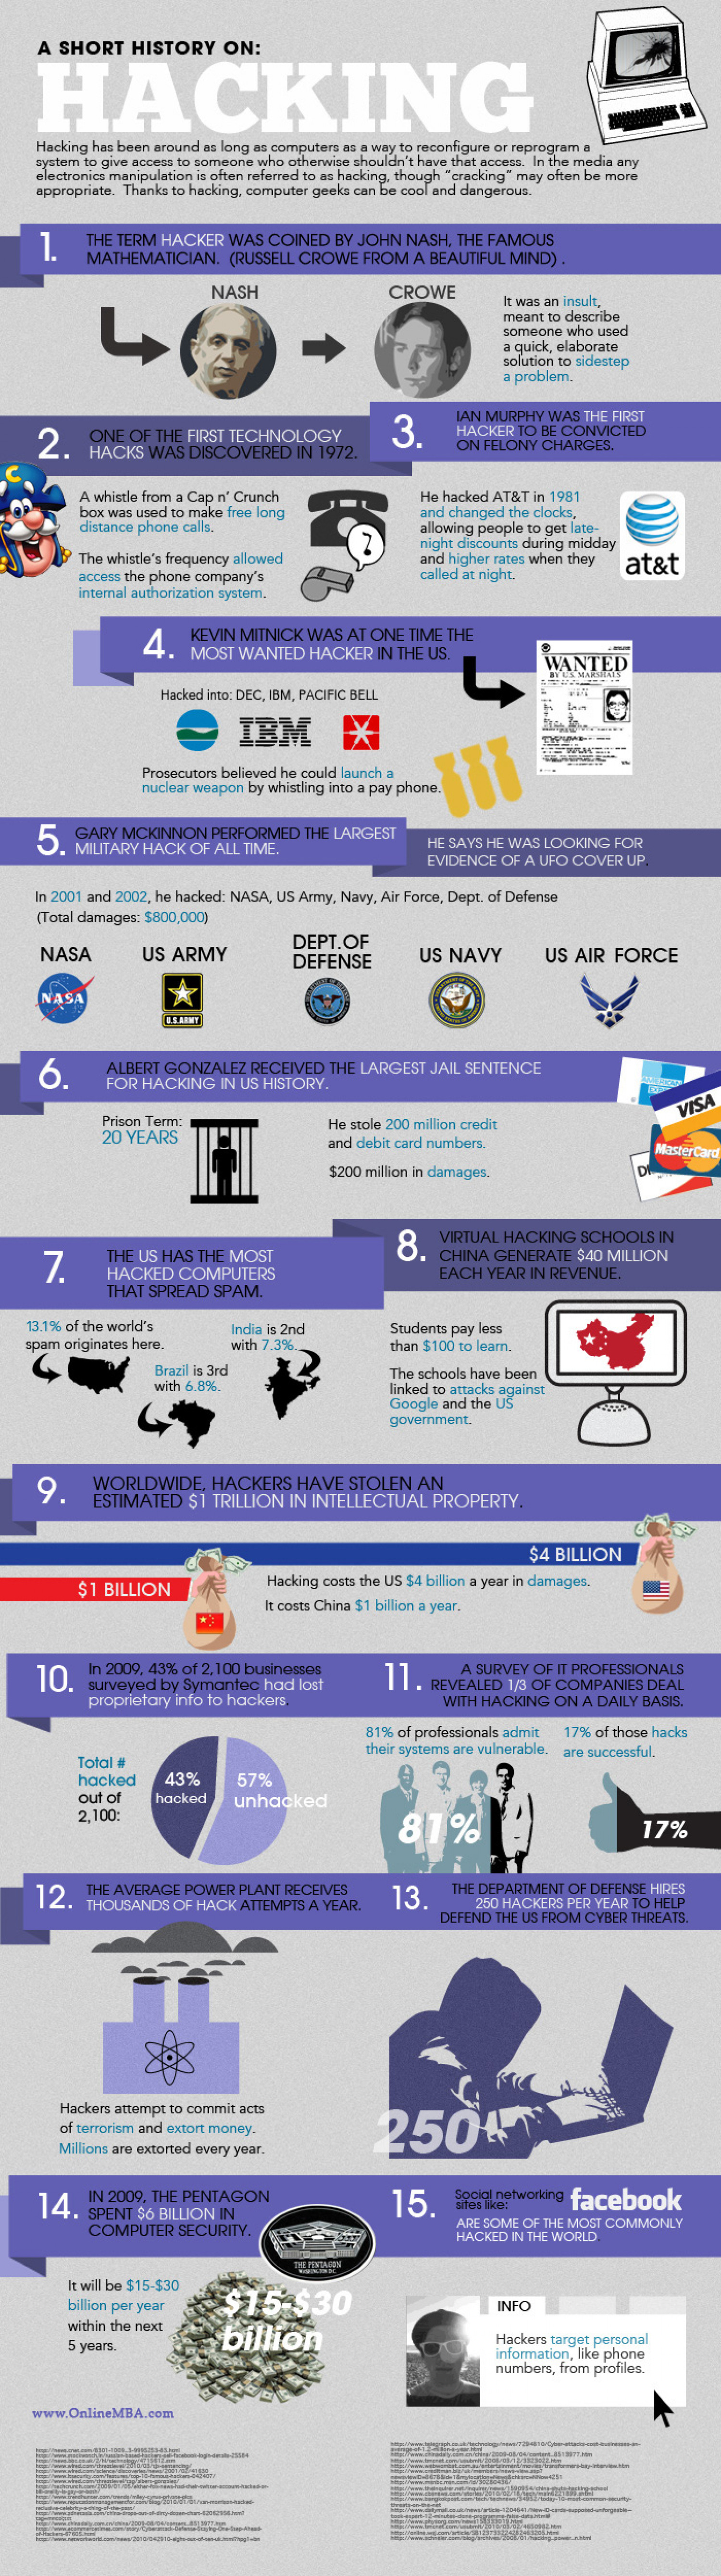 Career Planning & Job Hunting Tips Infographic